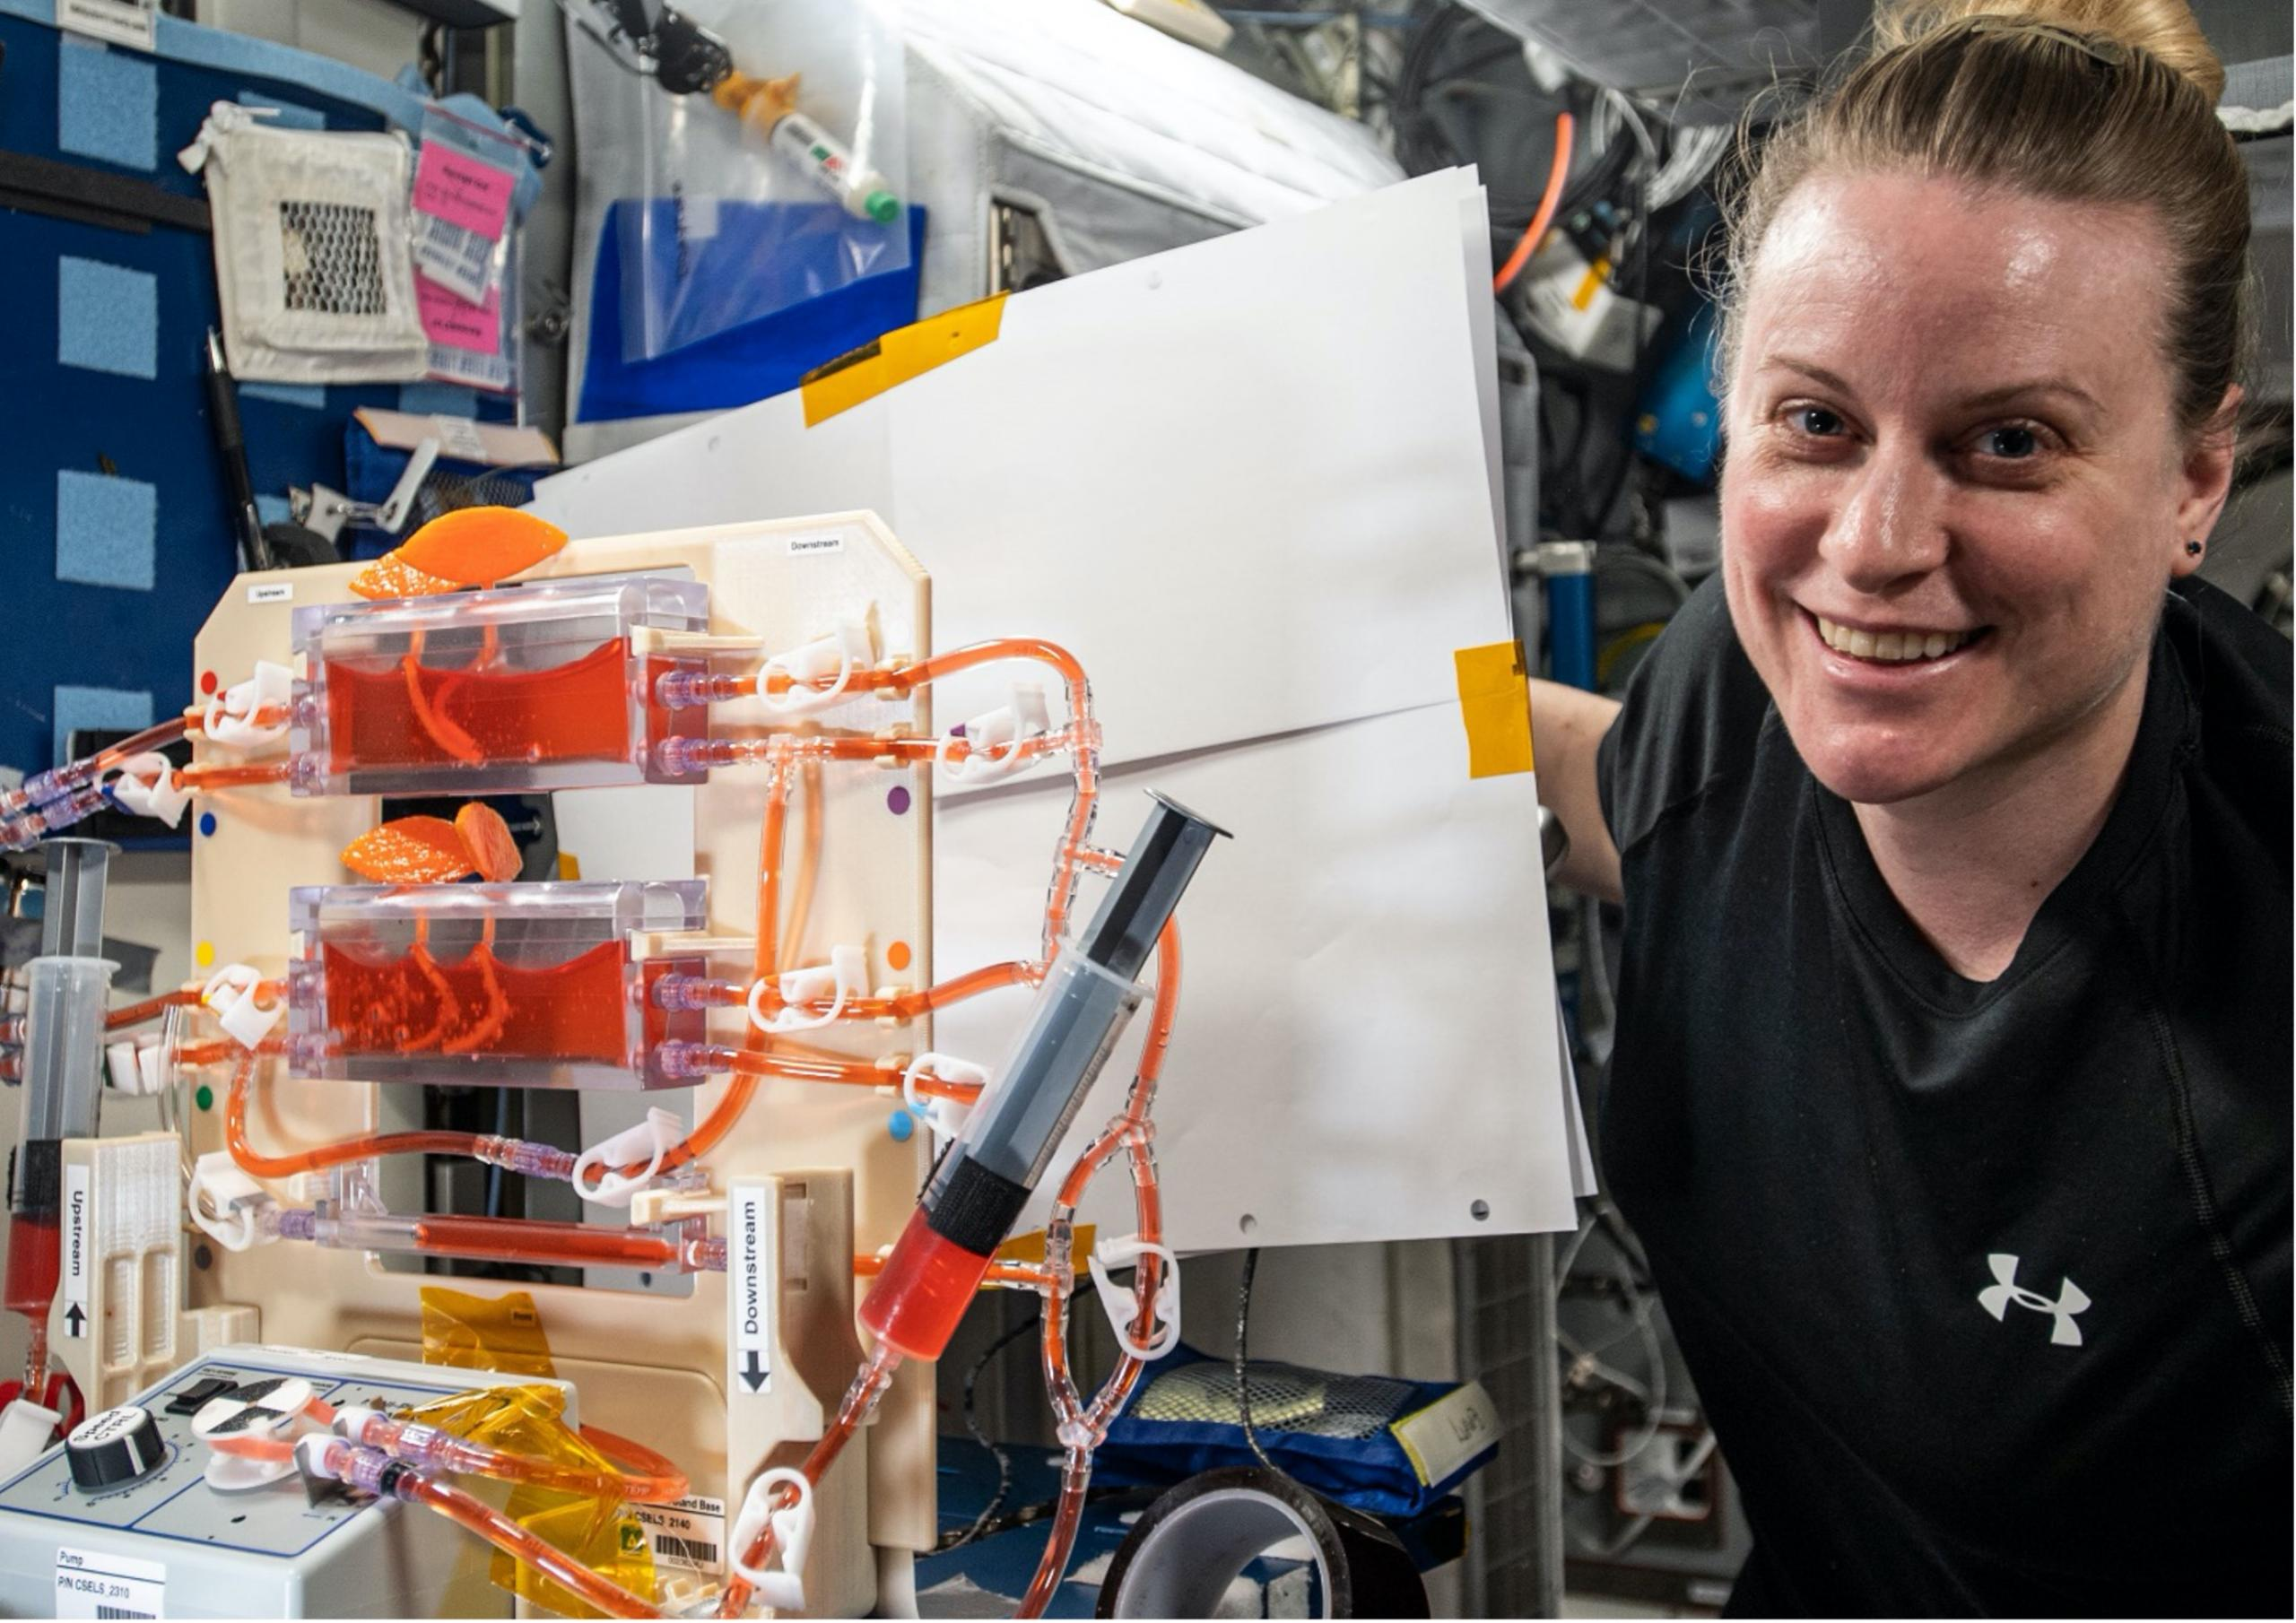 Photograph of a woman on the ISS next to the hydroponics research experiment with orange fluid in clear boxes connected by tubes.